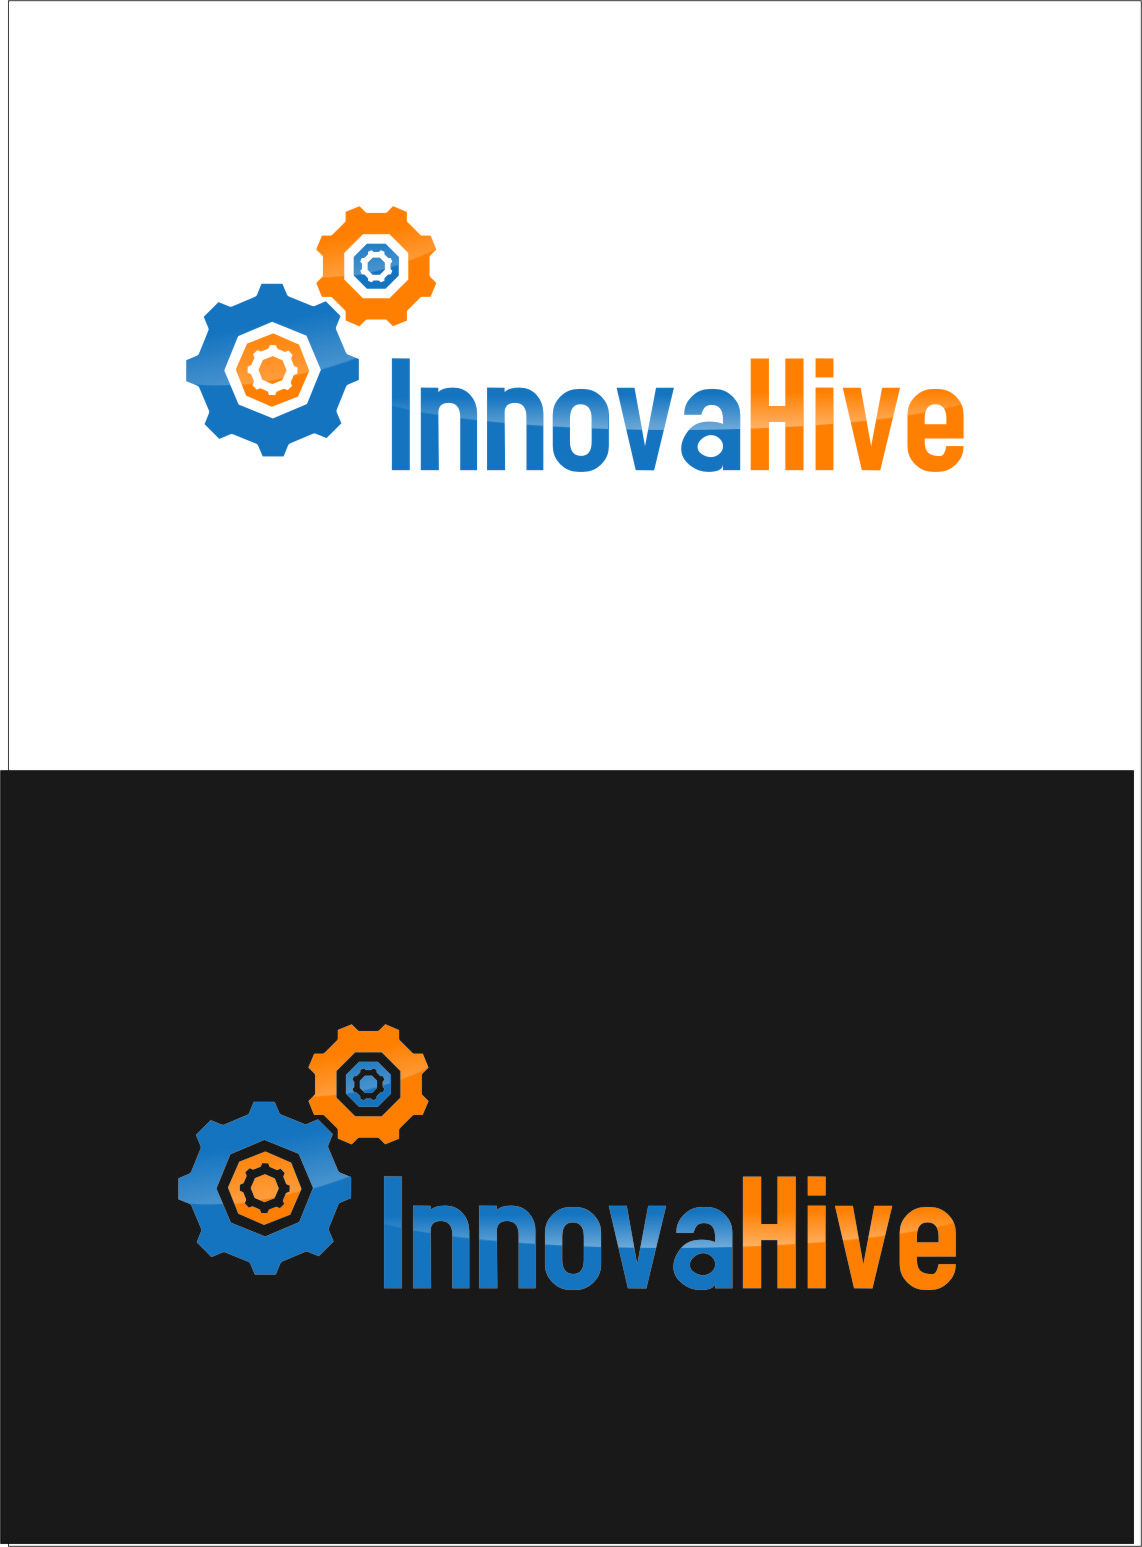 Logo Design by Ngepet_art - Entry No. 136 in the Logo Design Contest InnovaHive Logo Design.